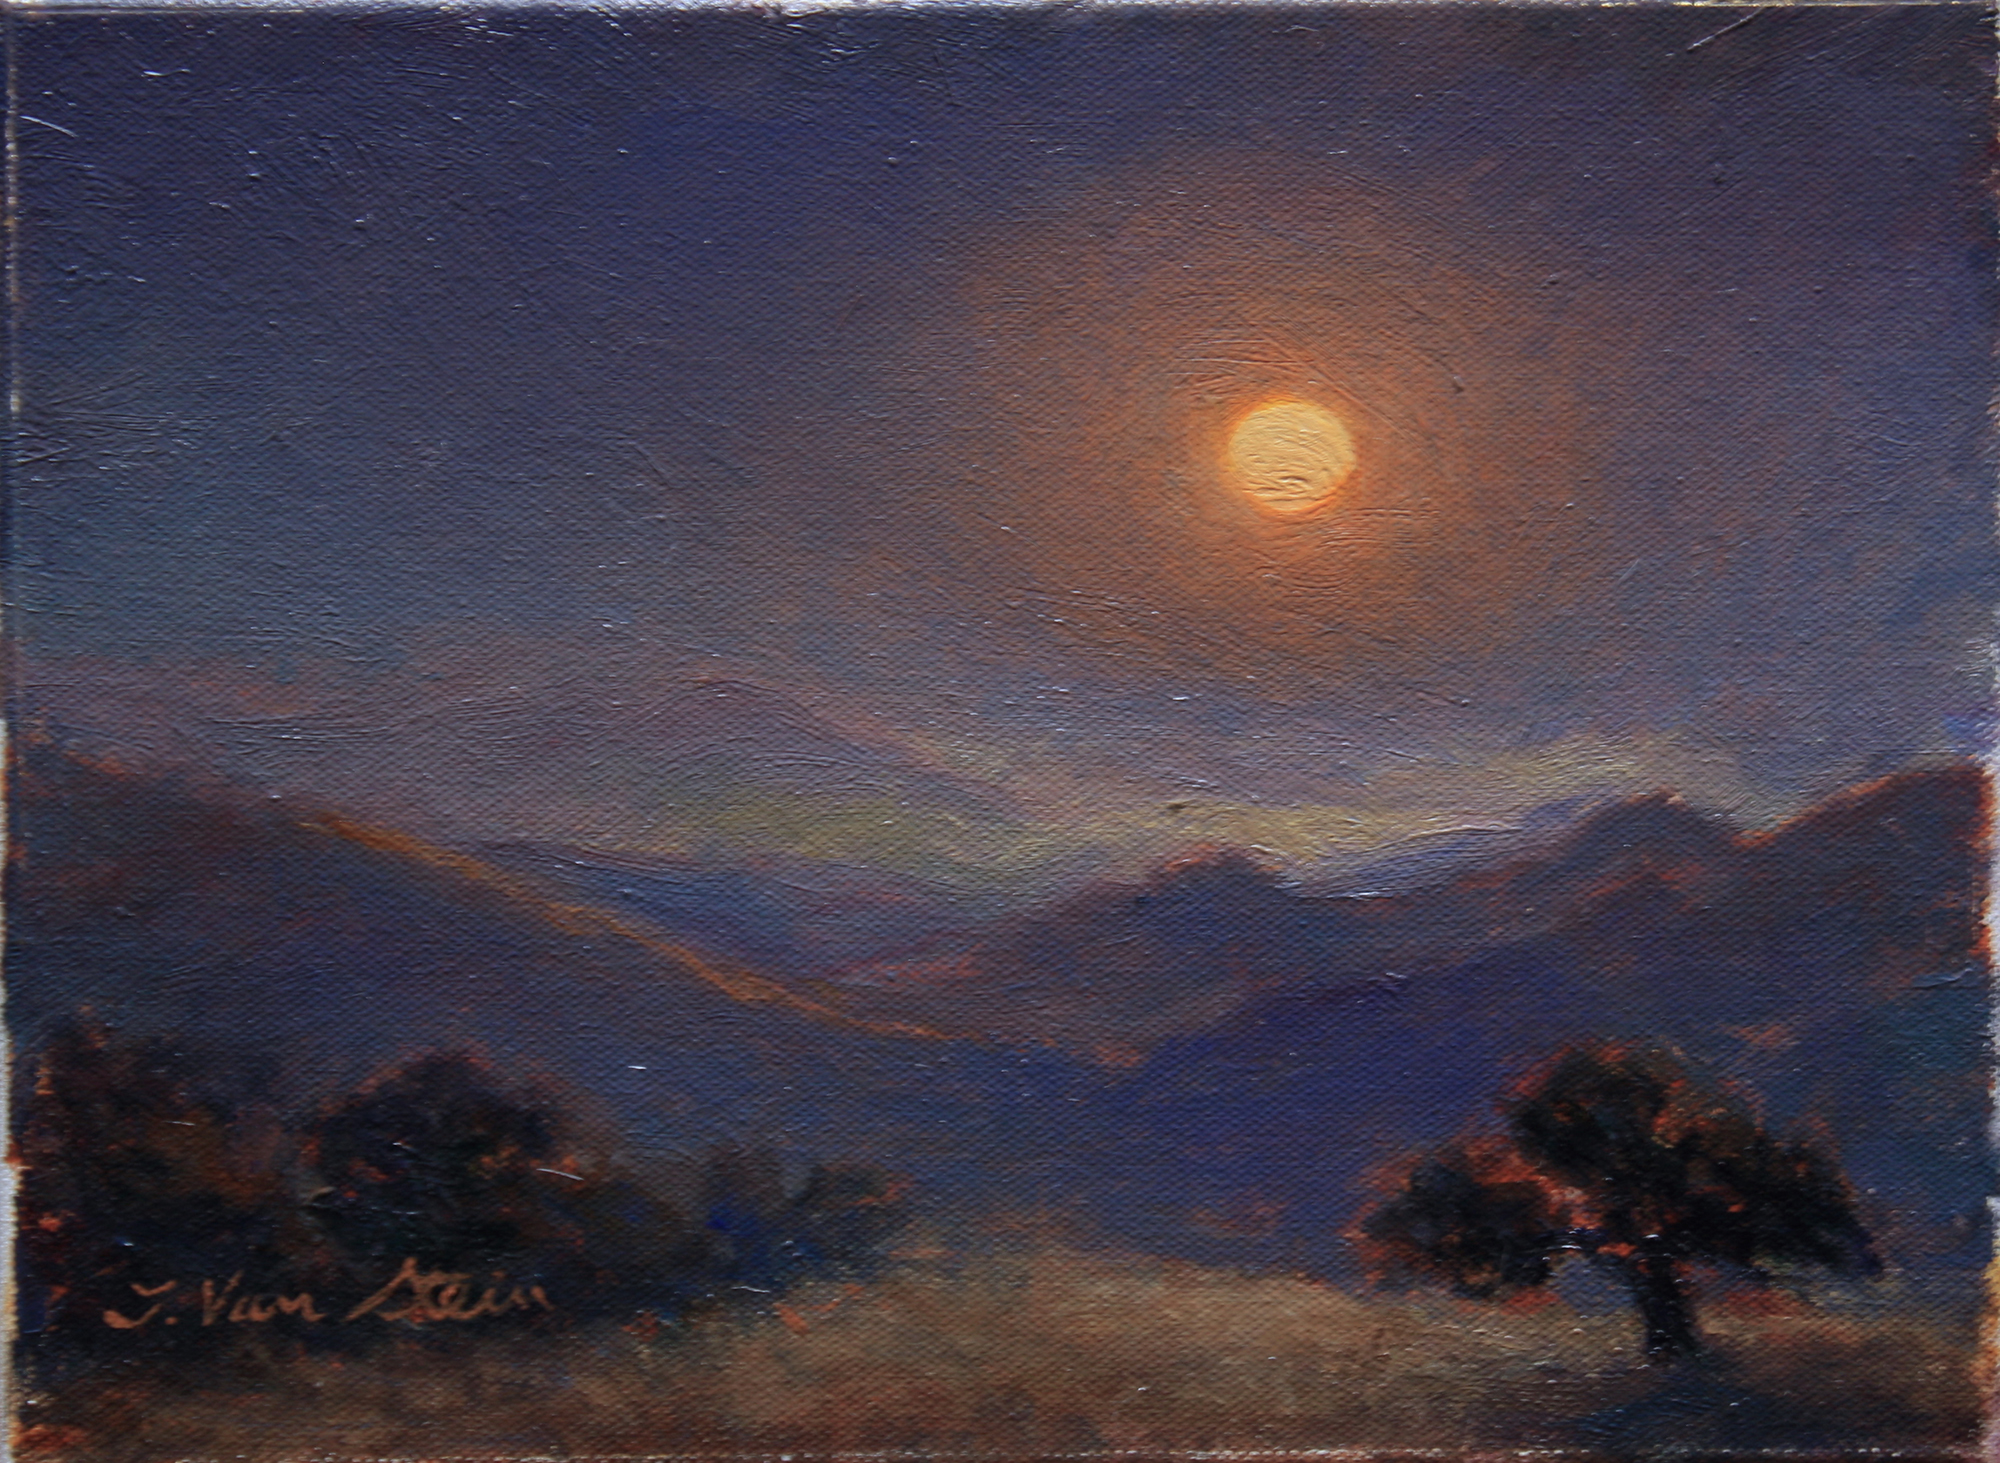 Harvest Moonrise, Santa Ynez,  9x12,  oil on canvas, 2018